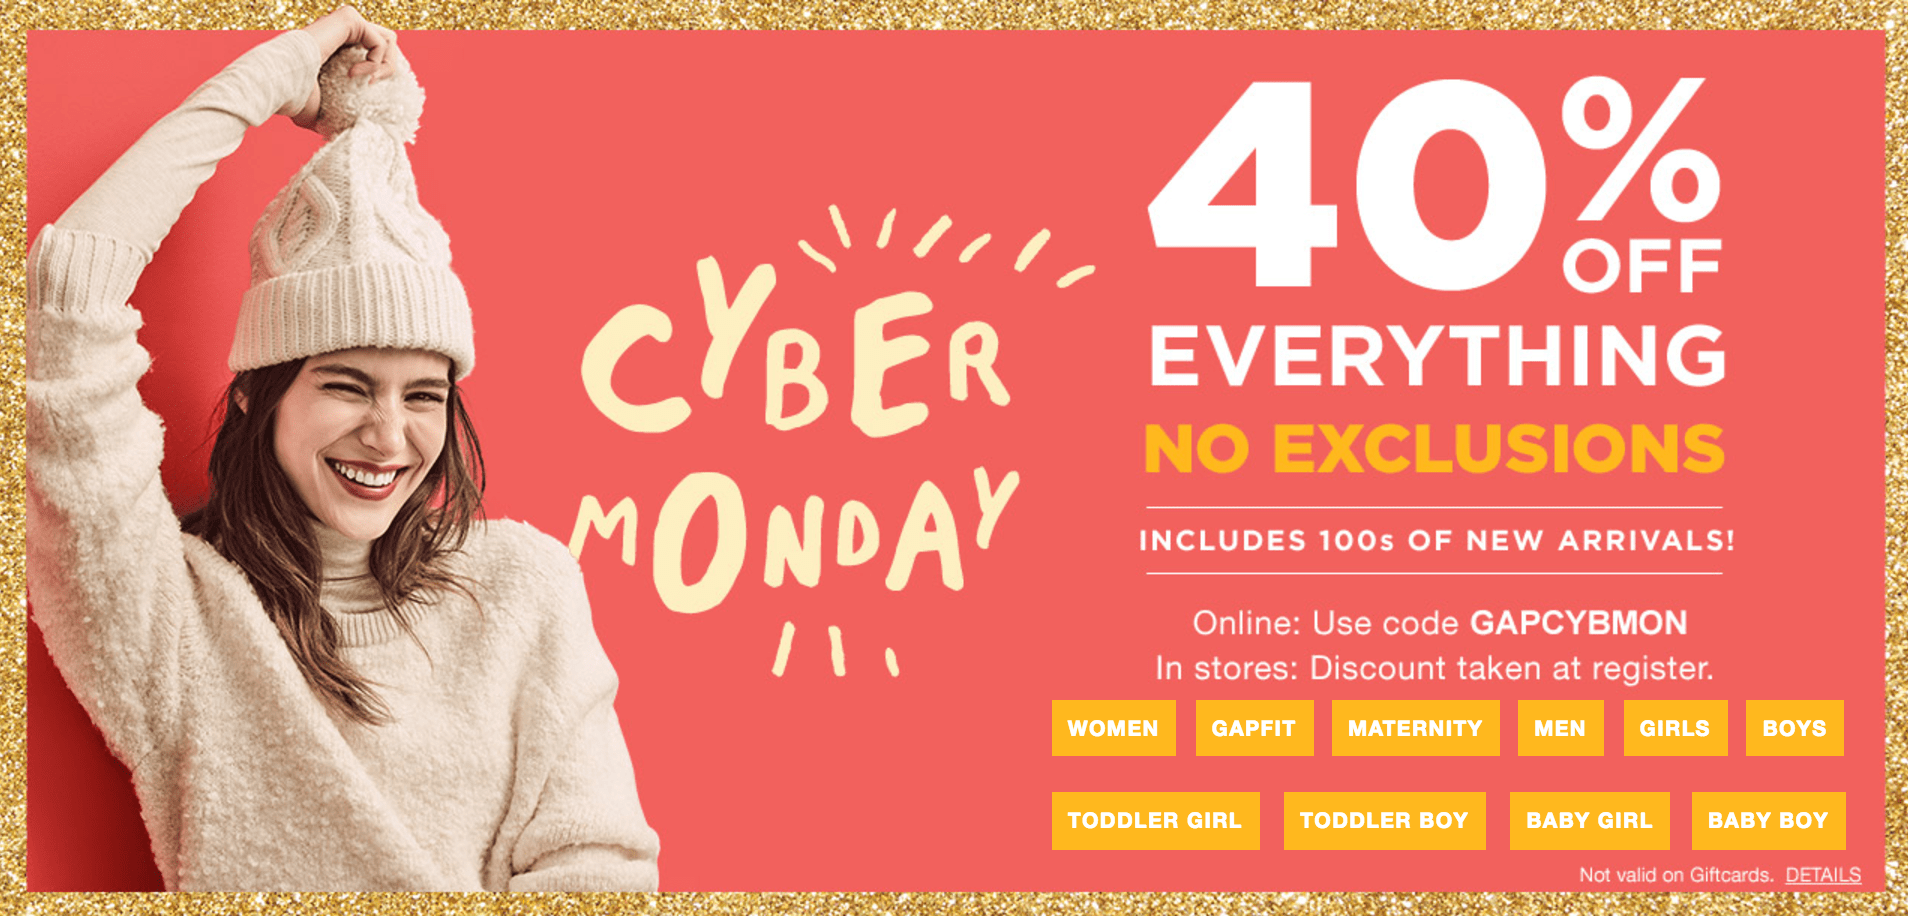 Gap Canada Cyber Monday Starts Now: Save 40% Off Everything, No Exclusions!